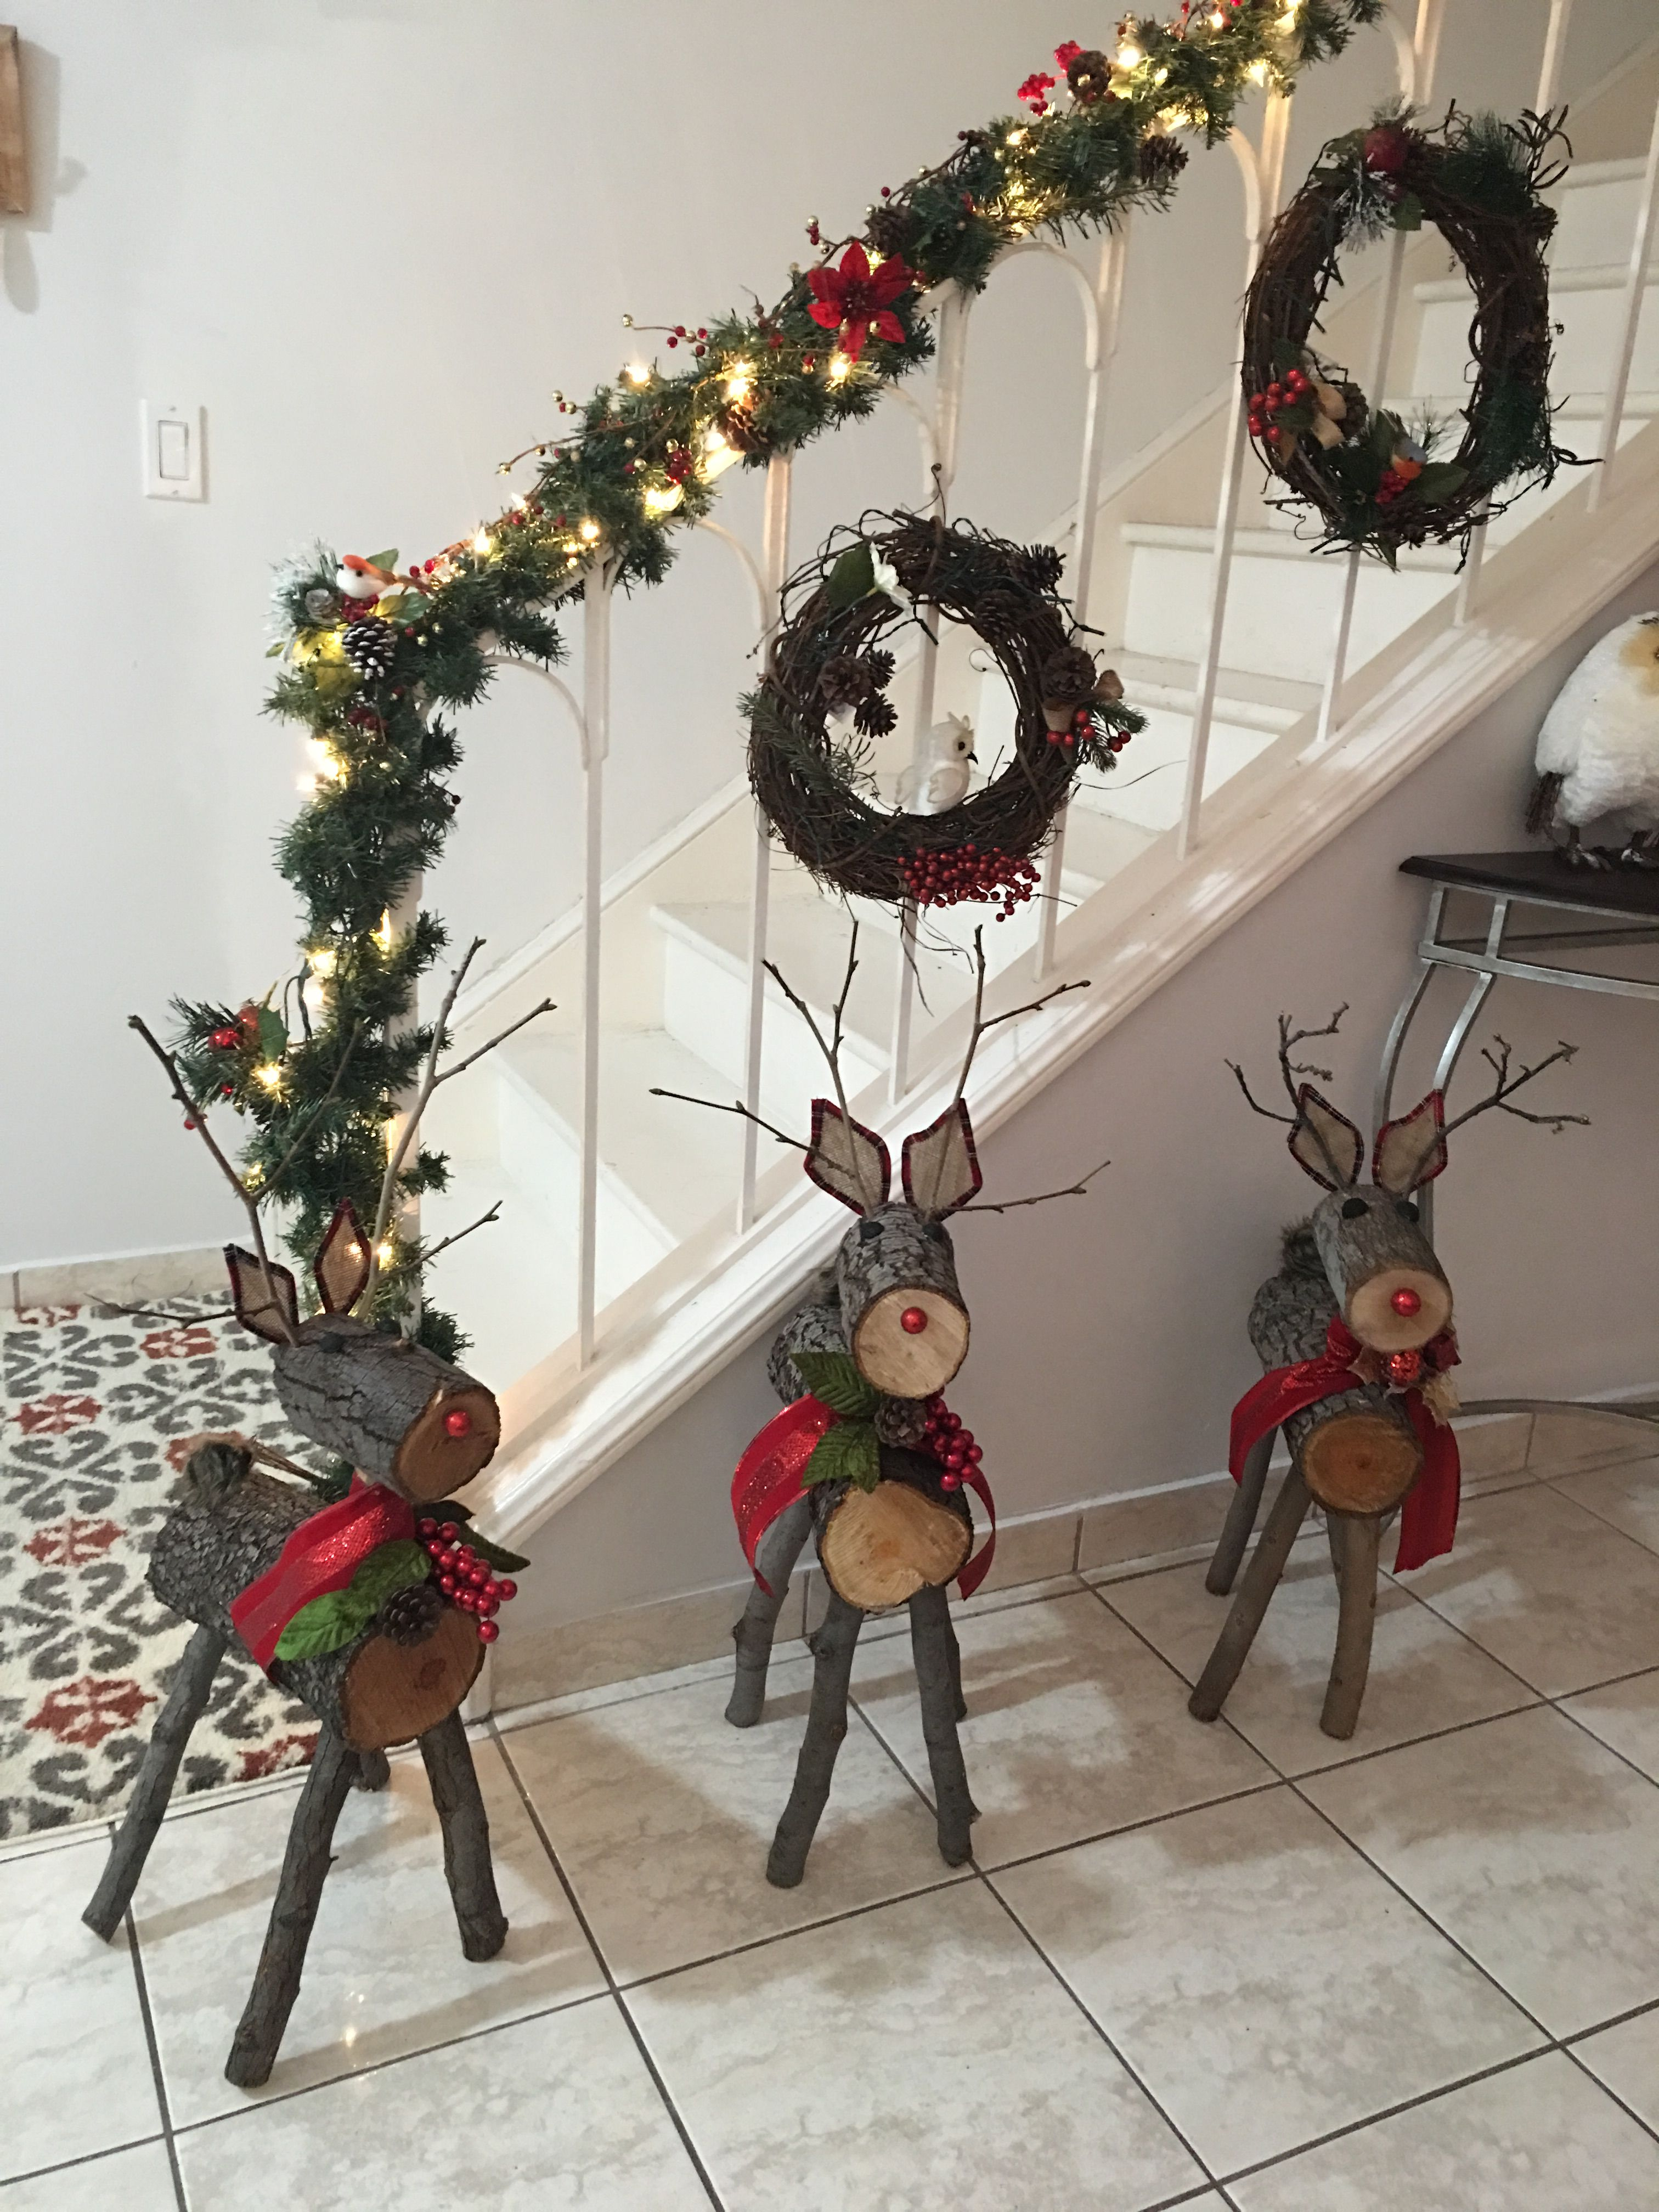 Pin By Jennifer Teutimez On Holiday Crafts Pinterest Christmas Crafts Wooden Christmas Decorations Christmas Crafts